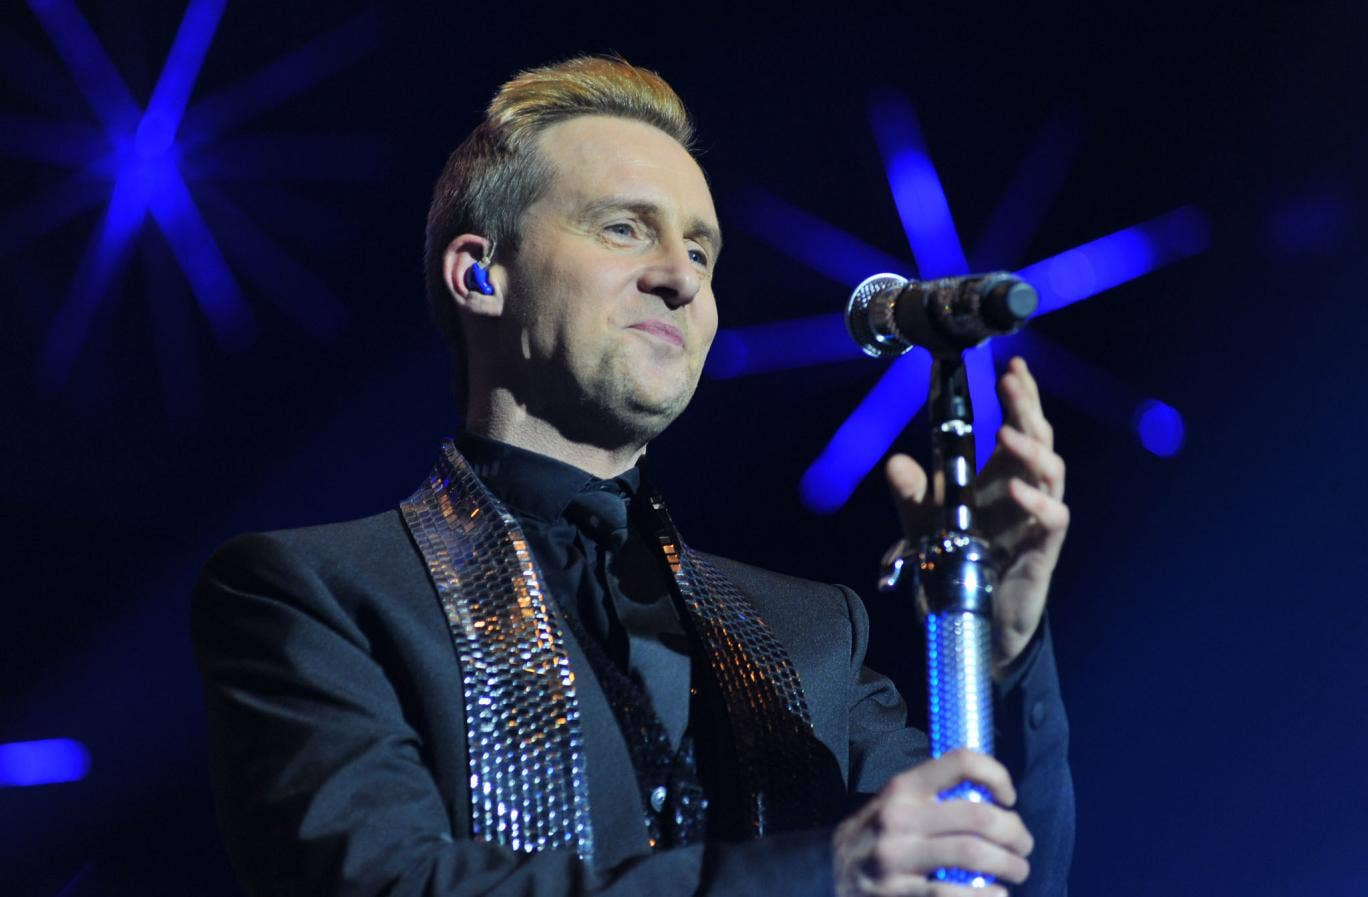 Former Steps singer Ian 'H' Watkins received a full apology in open court for his image being used to illustrate a story about convicted paedophile Ian Watkins from the Lostprophets.